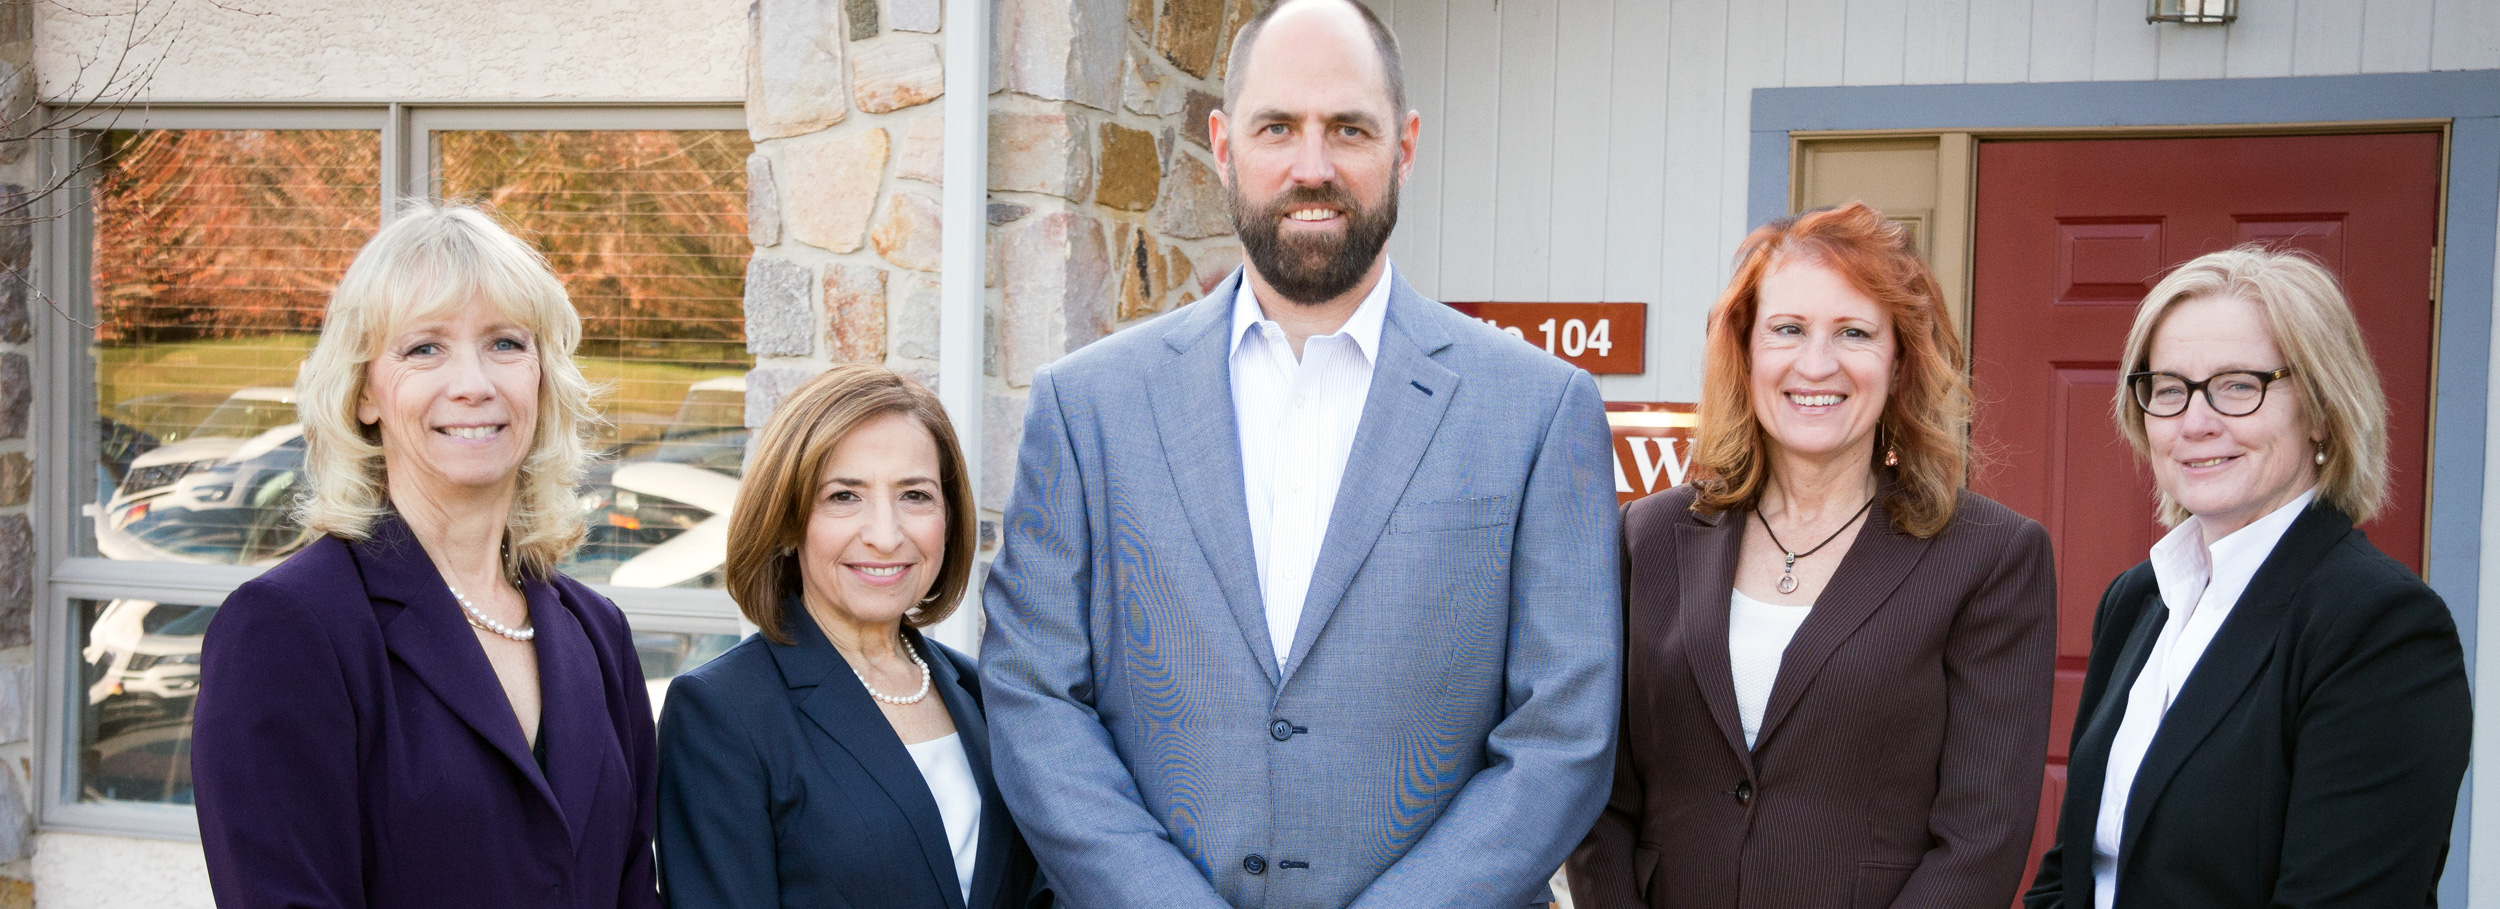 The Legal Team at Bort Law | Collaborative Approach to